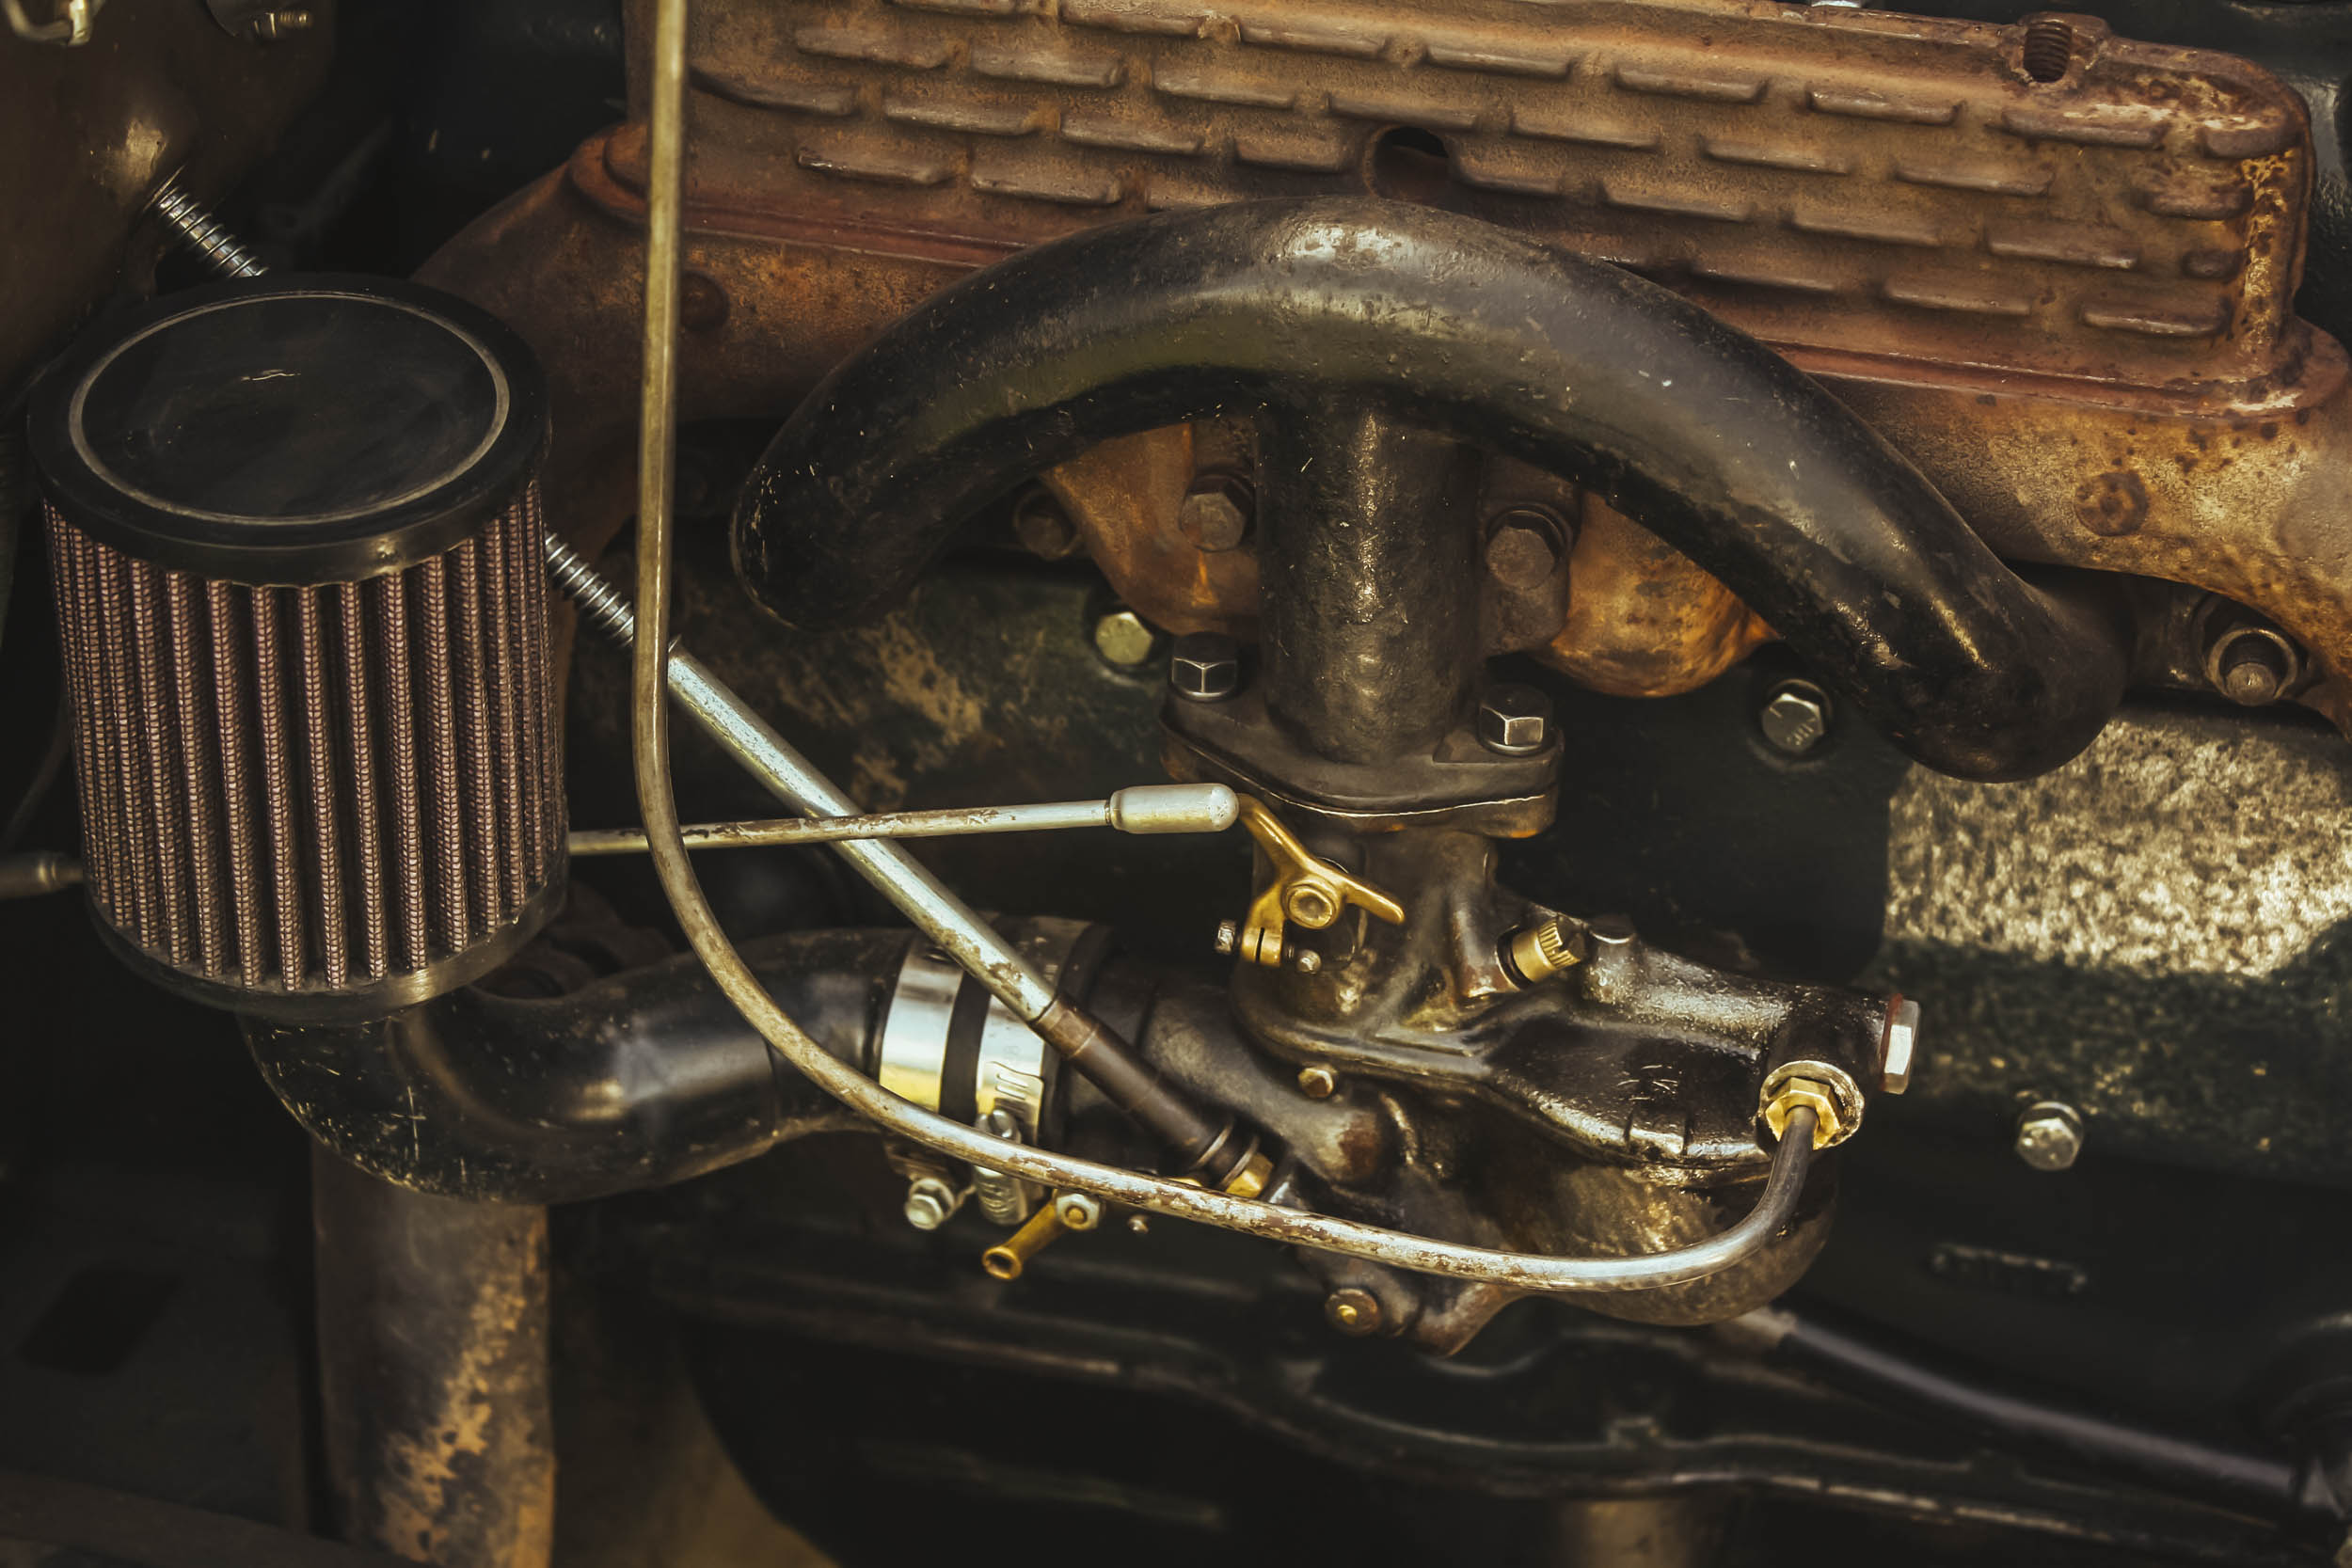 ford model a engine close up